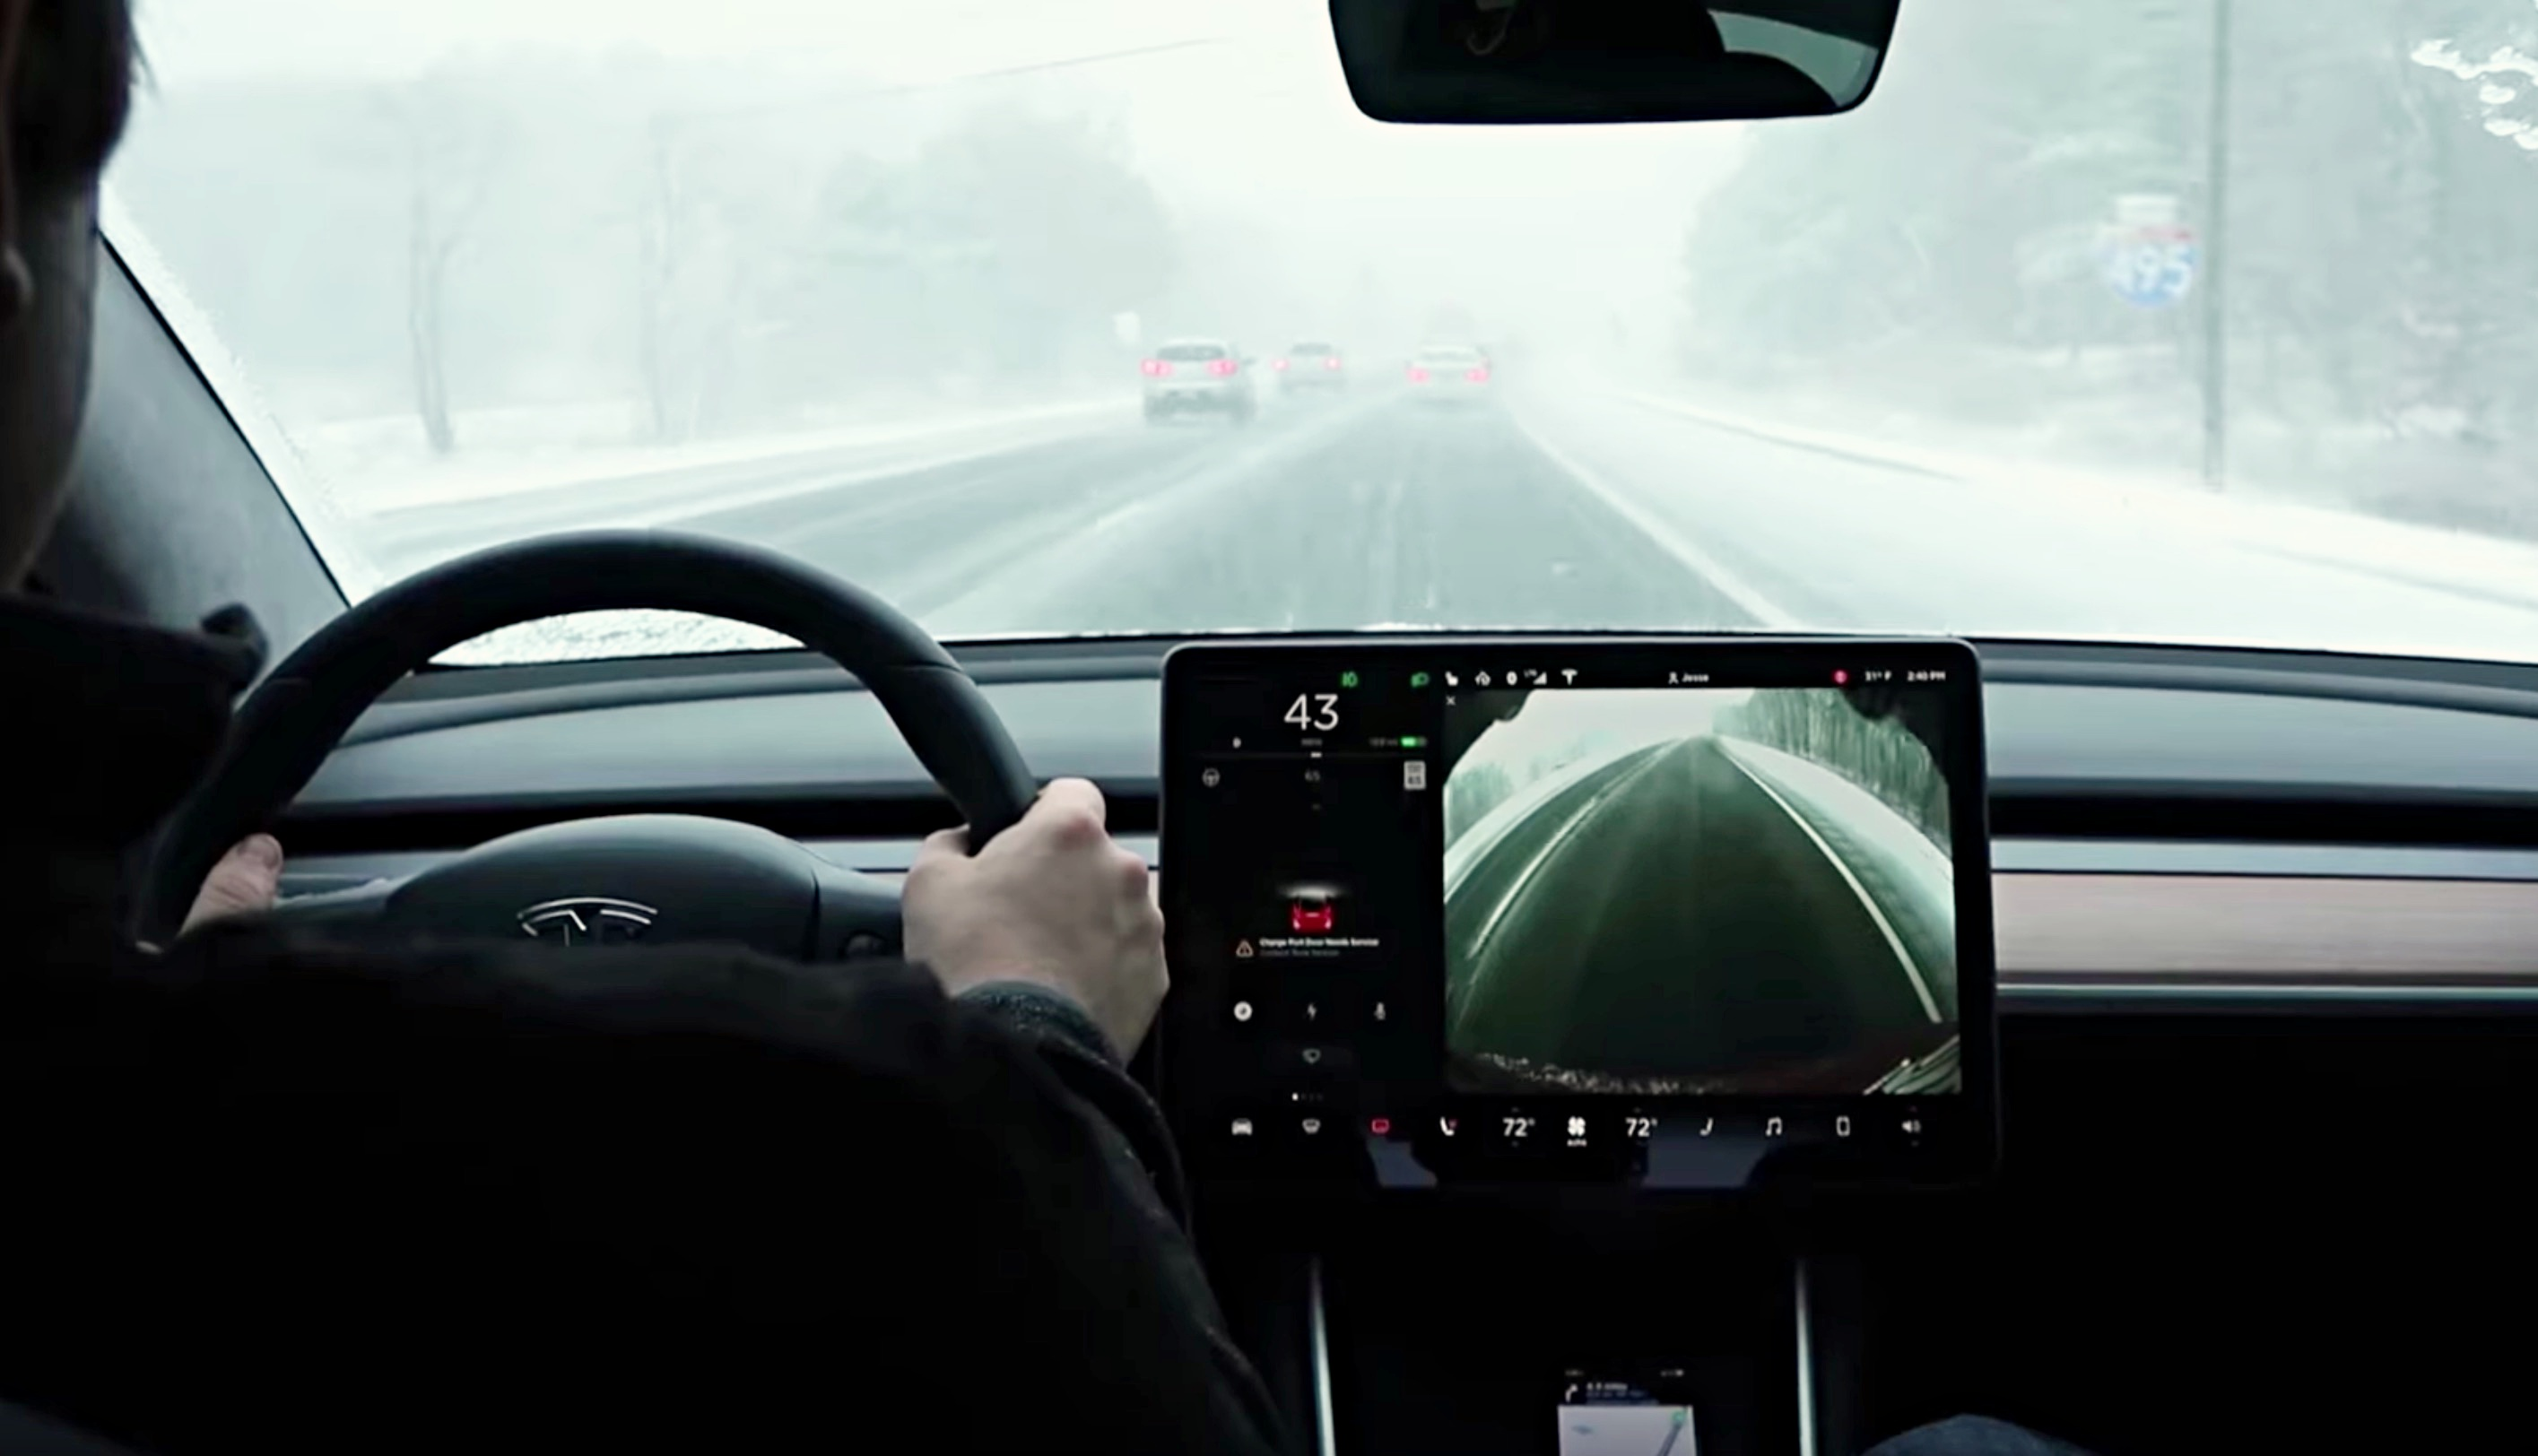 Best Look Yet At Tesla Model 3 Handling Snowy Conditions